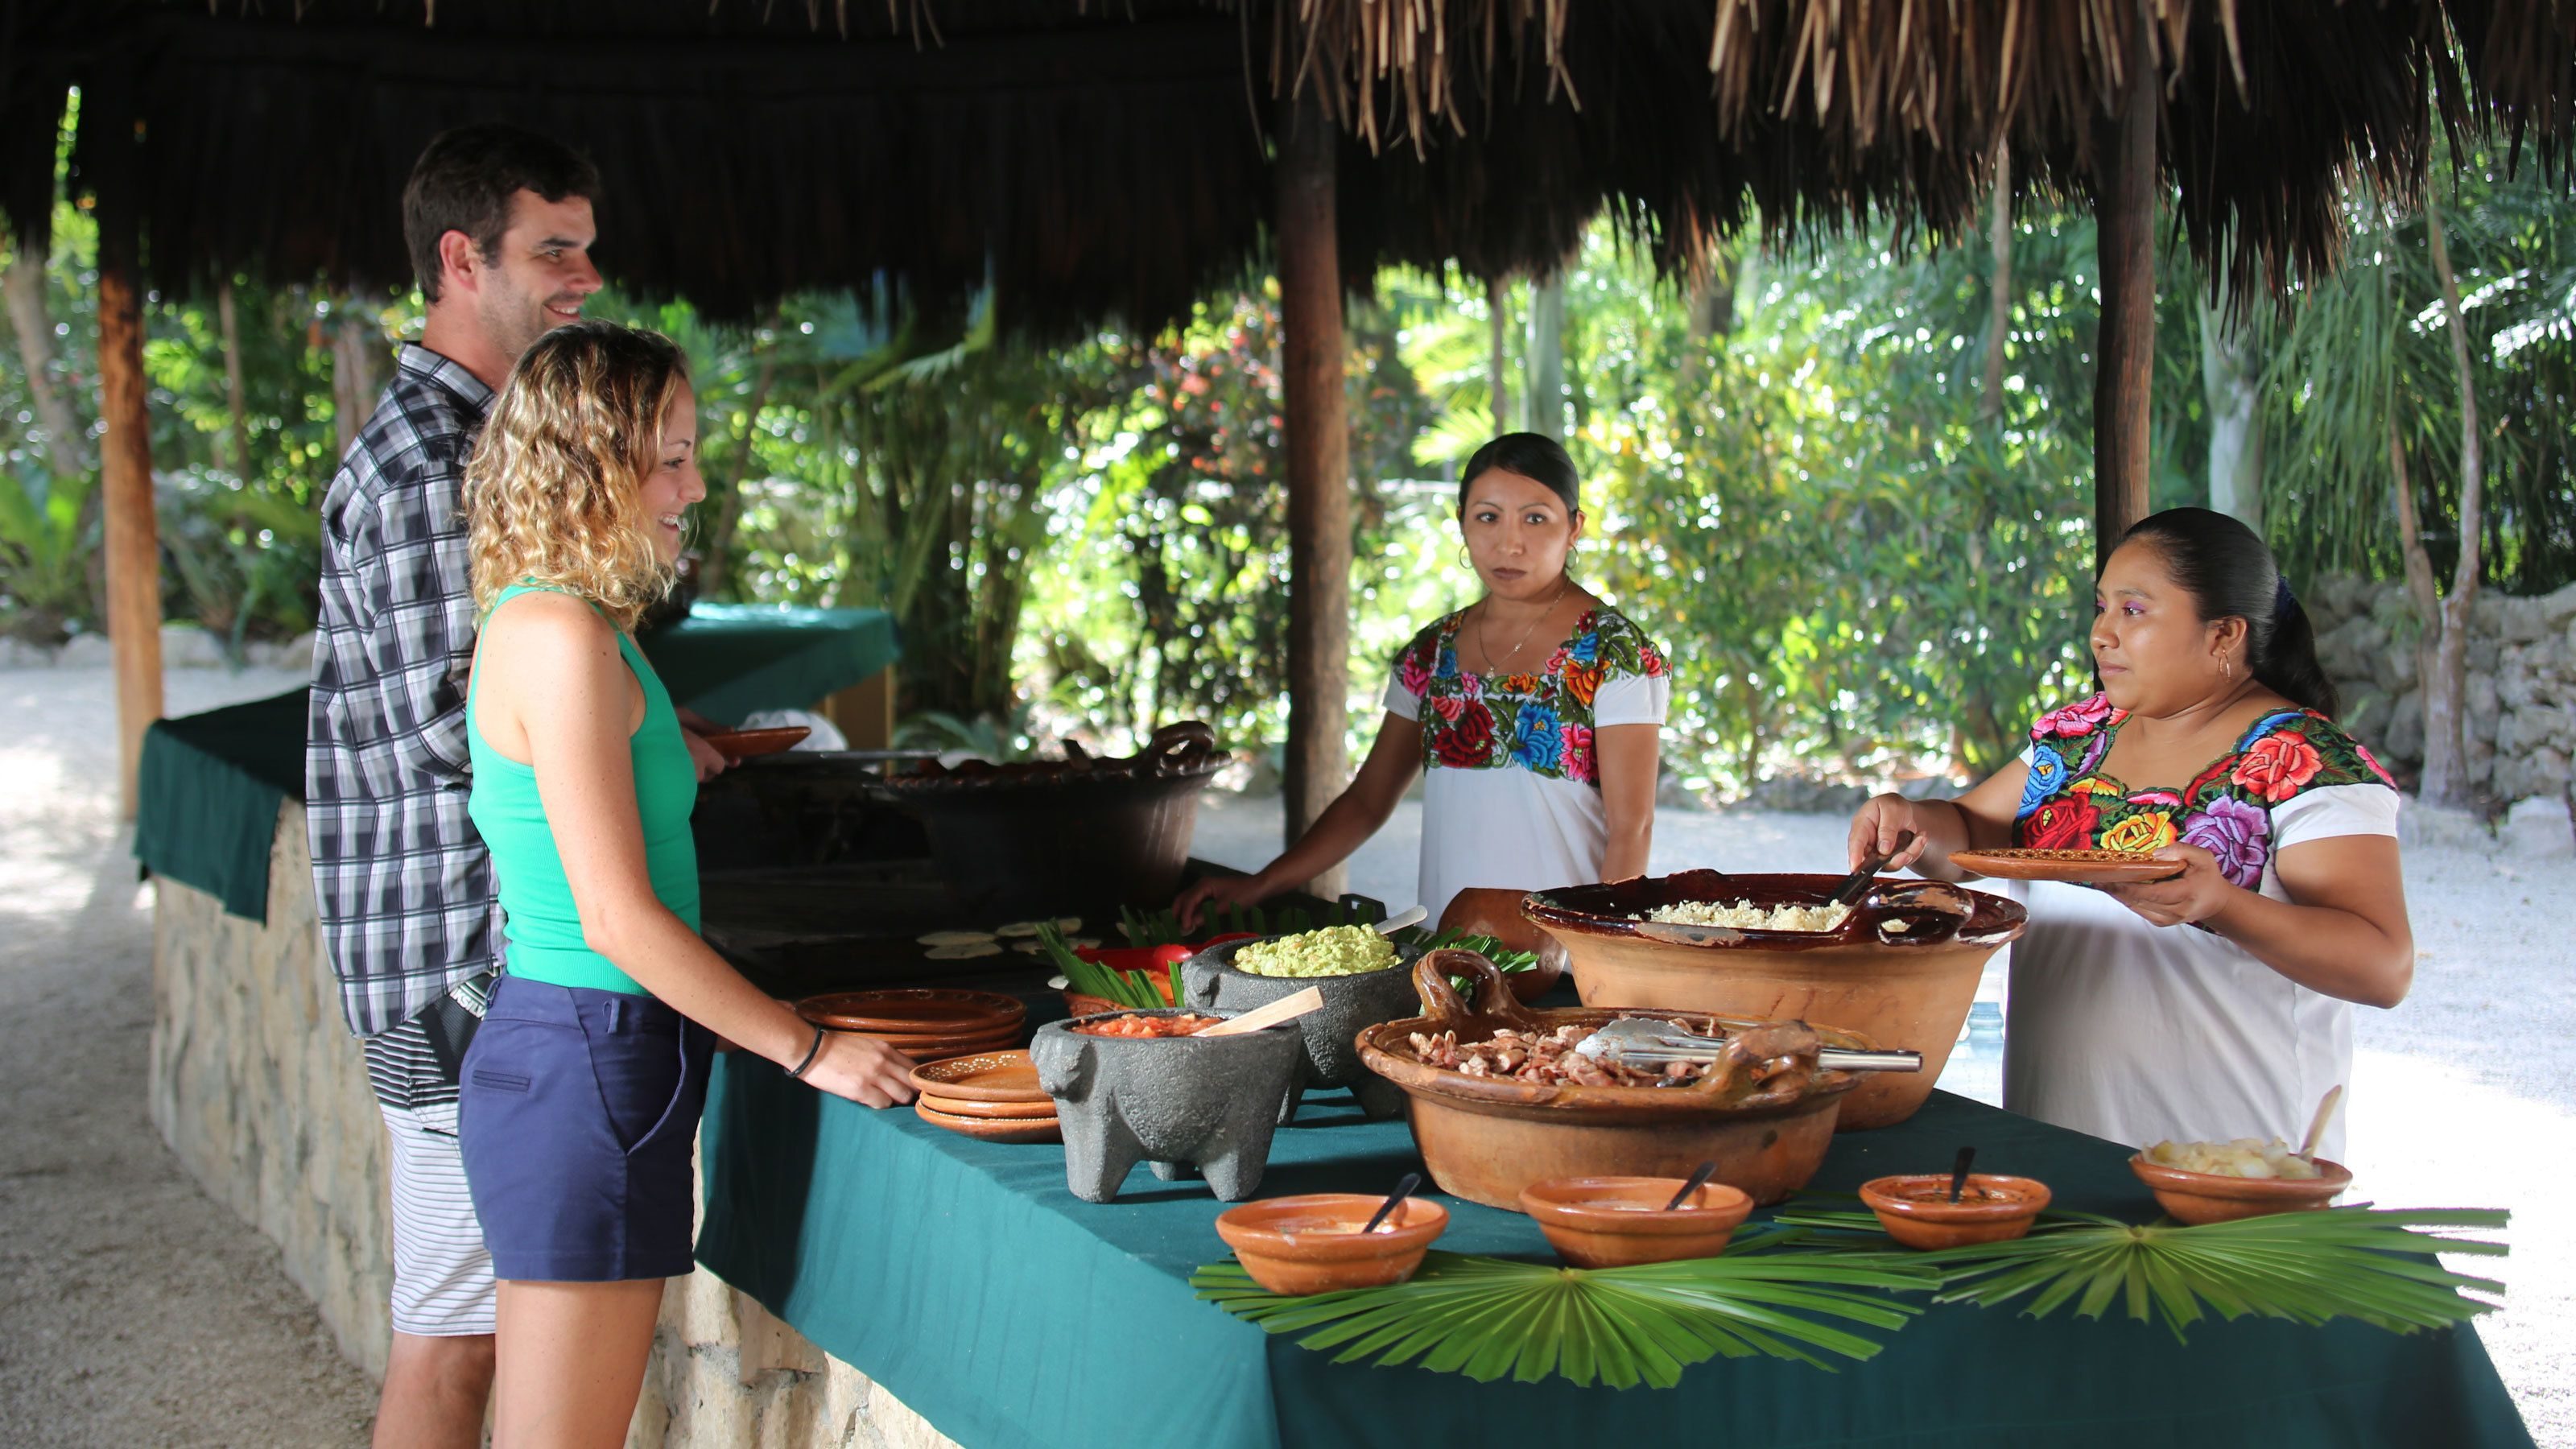 Buffet lunch featuring local cuisine is included on the Tulum & Tankah Eco Adventure Park Excursion